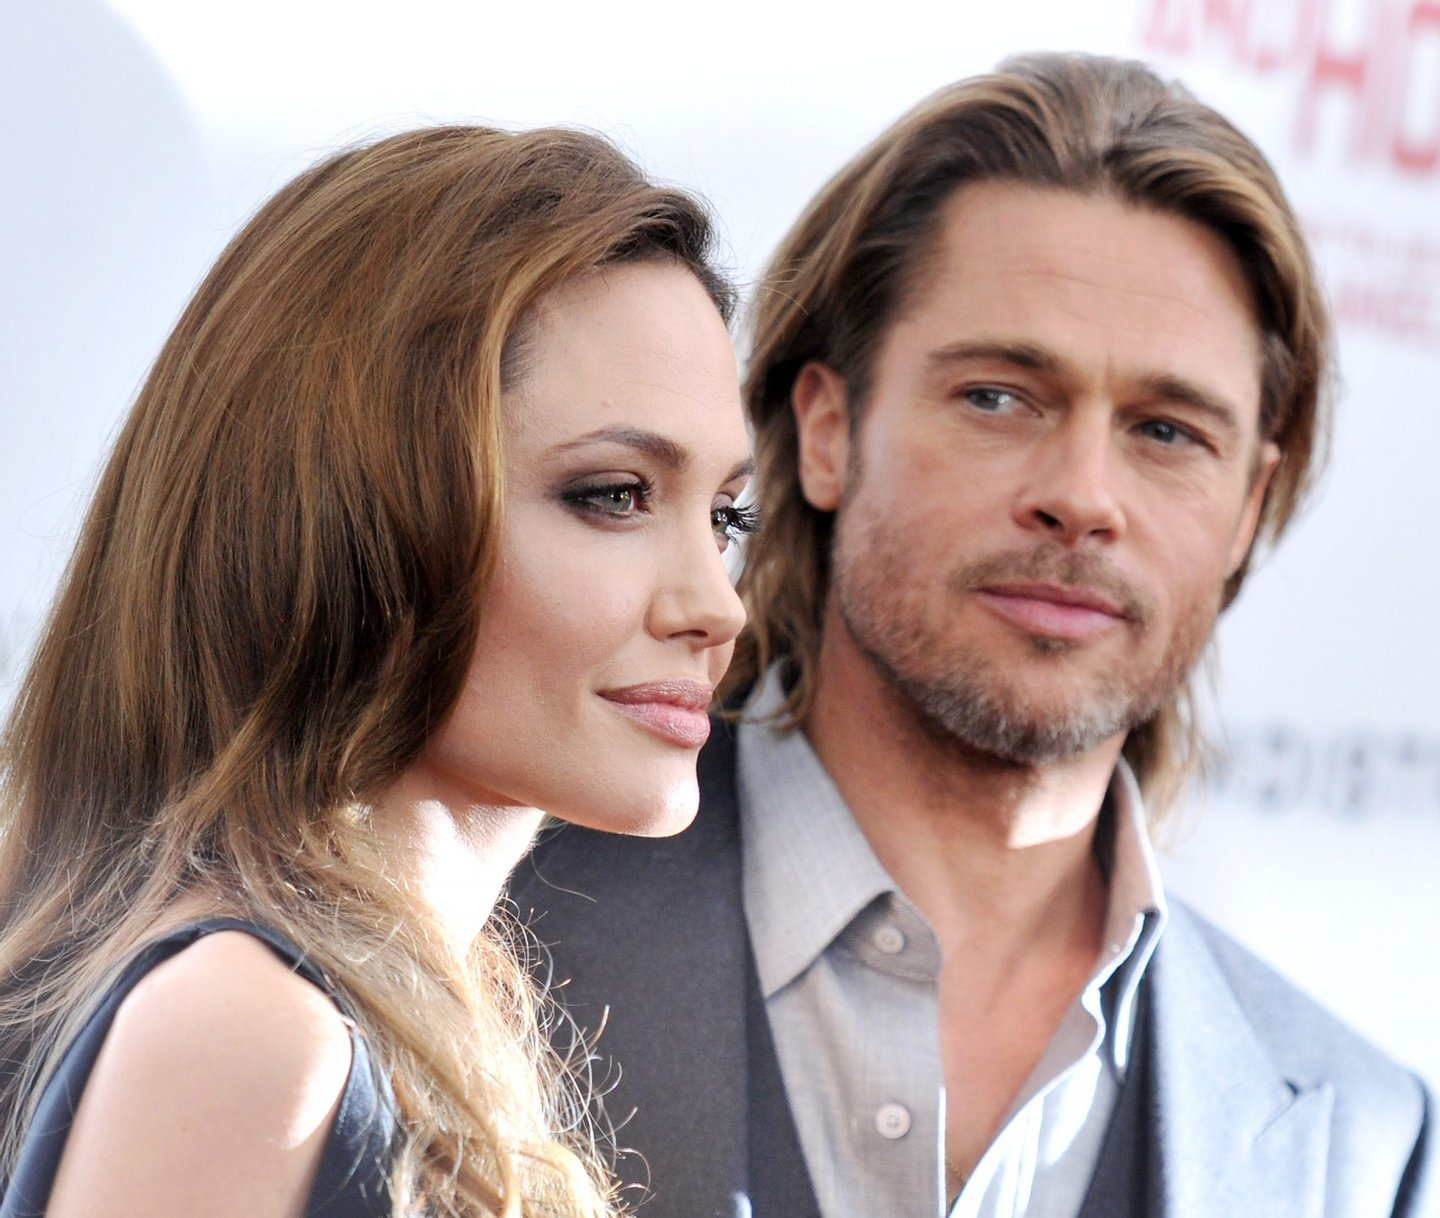 """NEW YORK, NY - DECEMBER 05: Angelina Jolie and Brad Pitt attend the premiere of """"In the Land of Blood and Honey"""" at the School of Visual Arts on December 5, 2011 in New York City. (Photo by Stephen Lovekin/Getty Images)"""